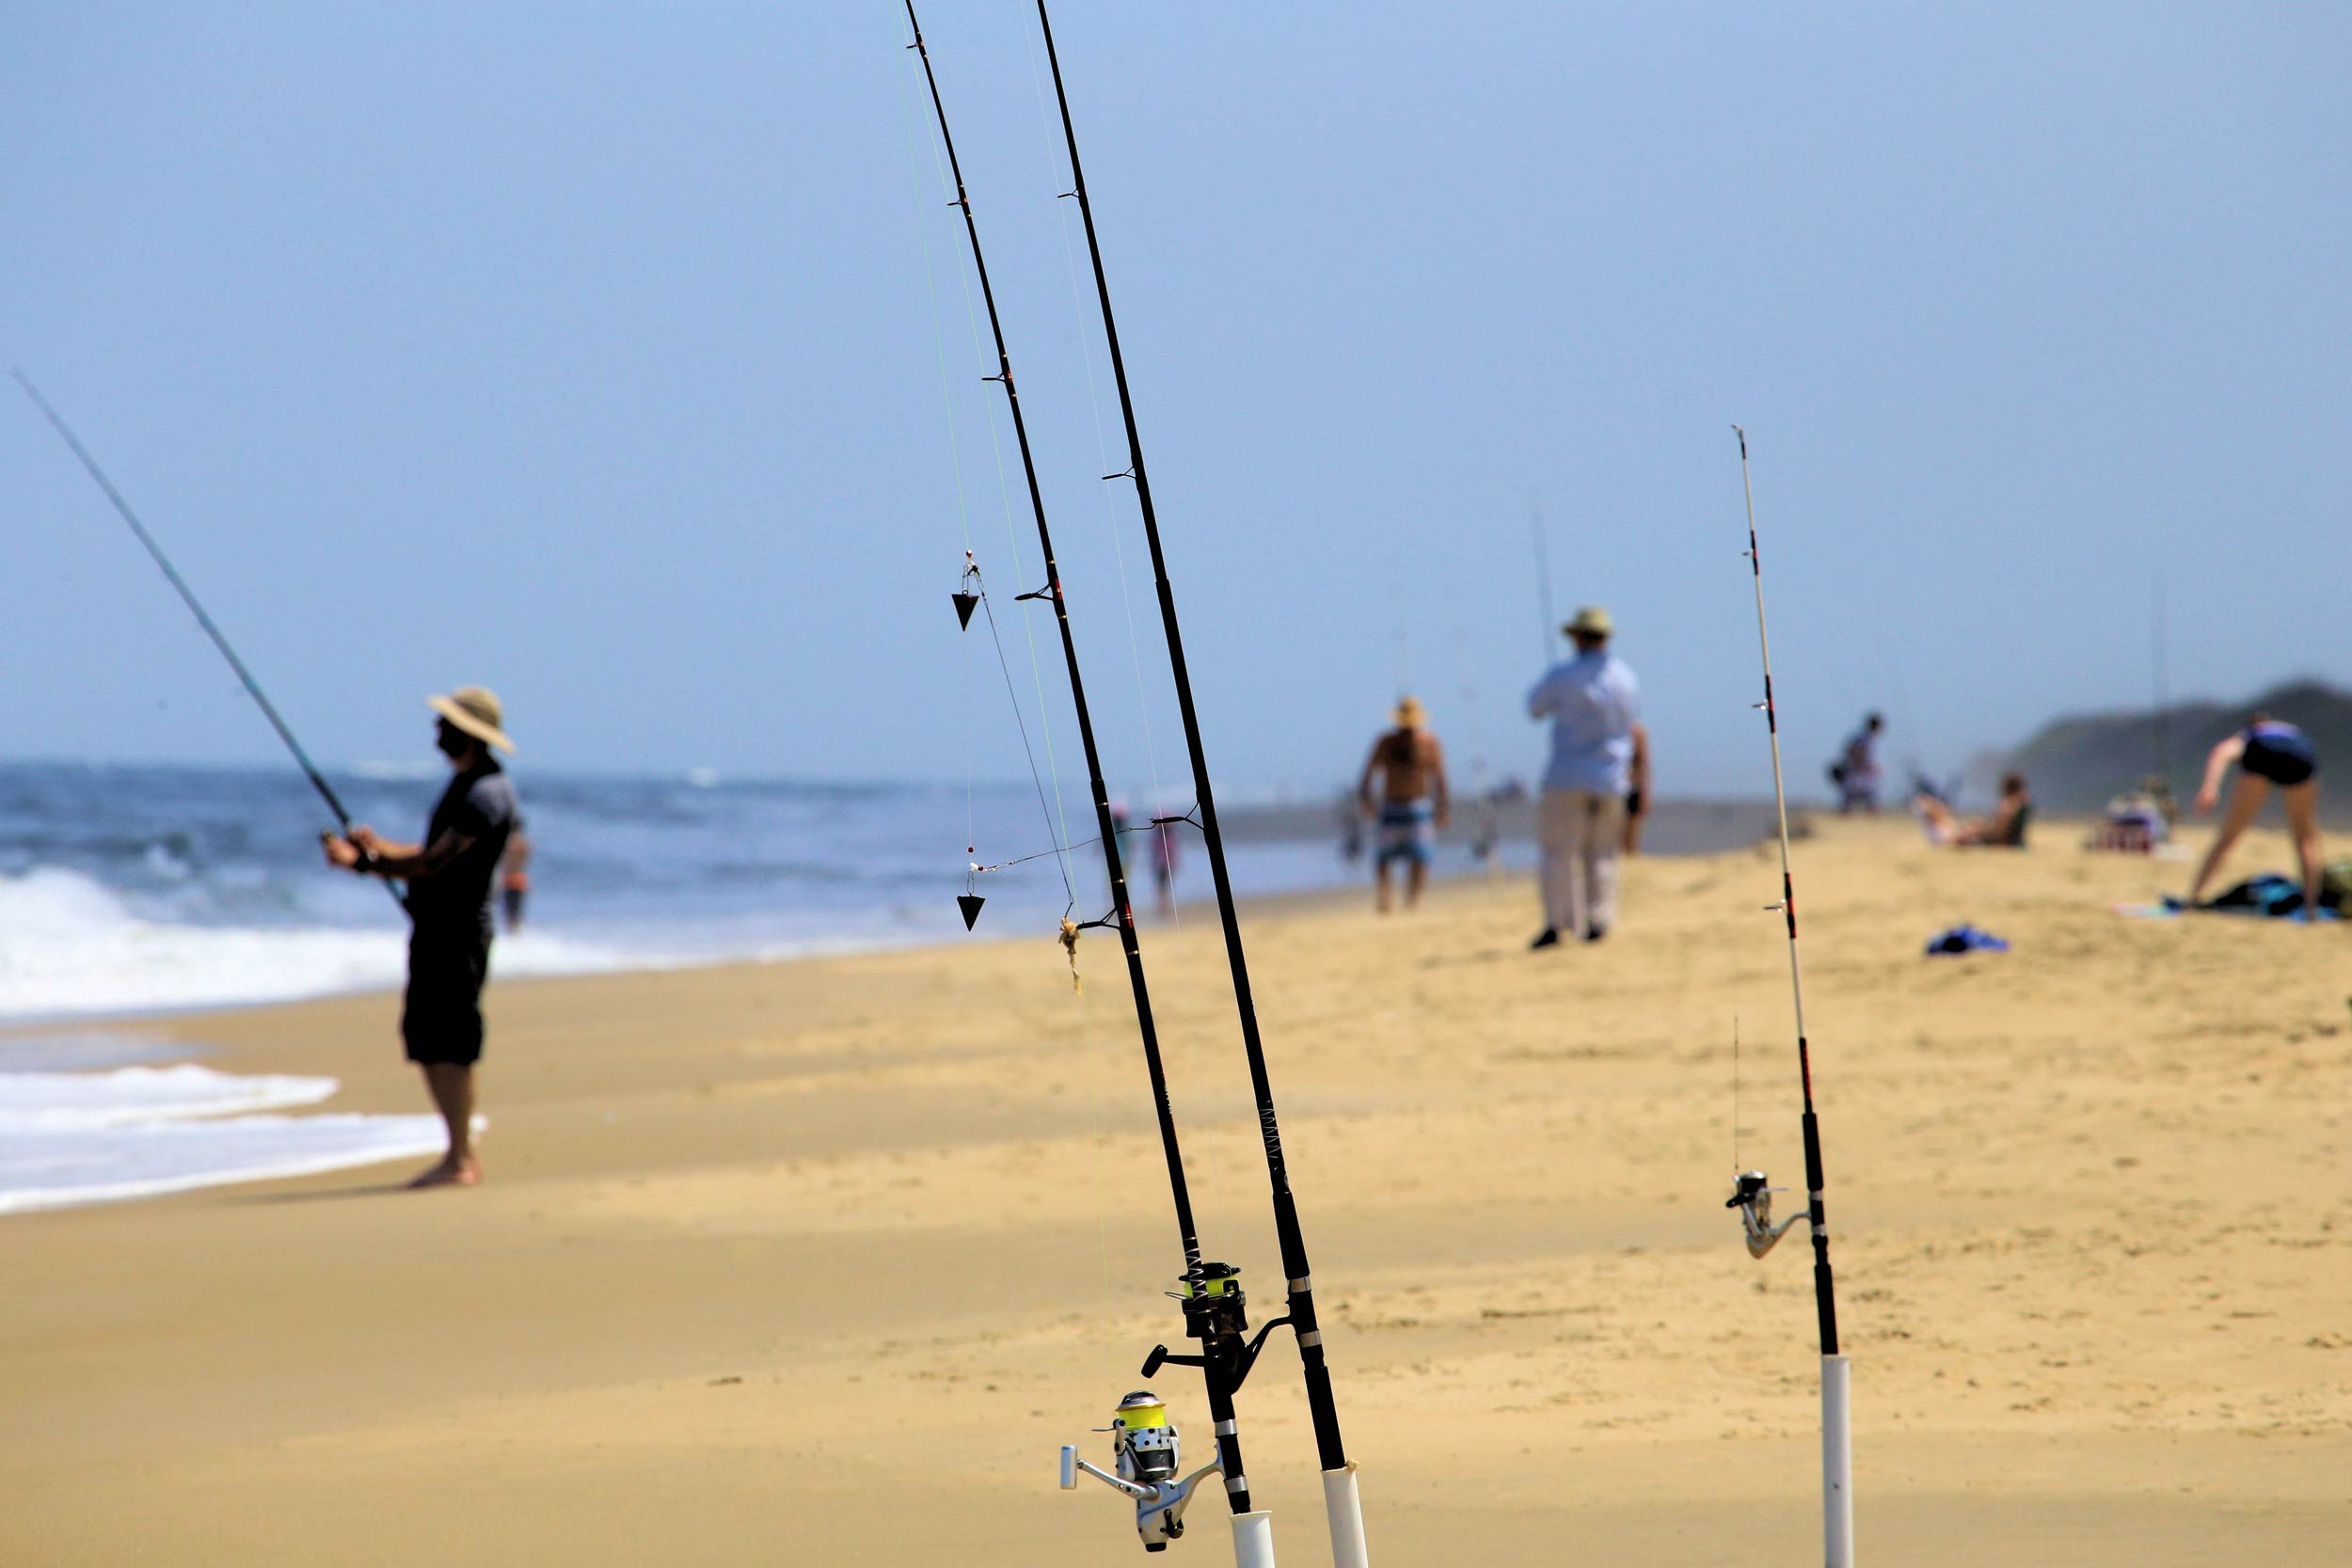 A photo of people surf fishing on the beach